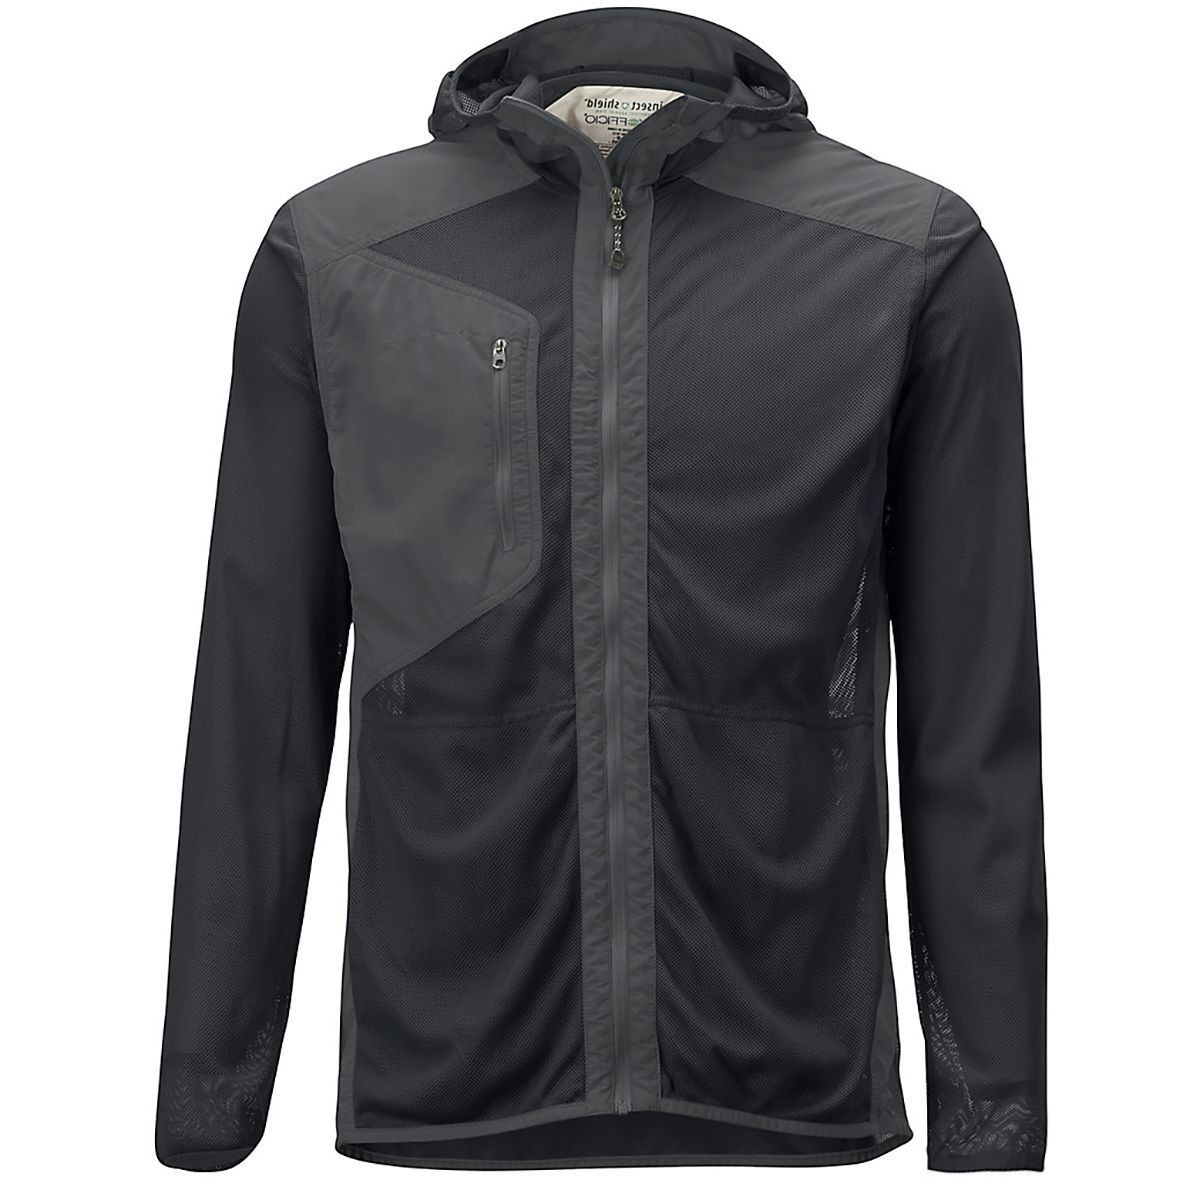 ExOfficio BugsAway Sandfly Hooded Jacket - Men's